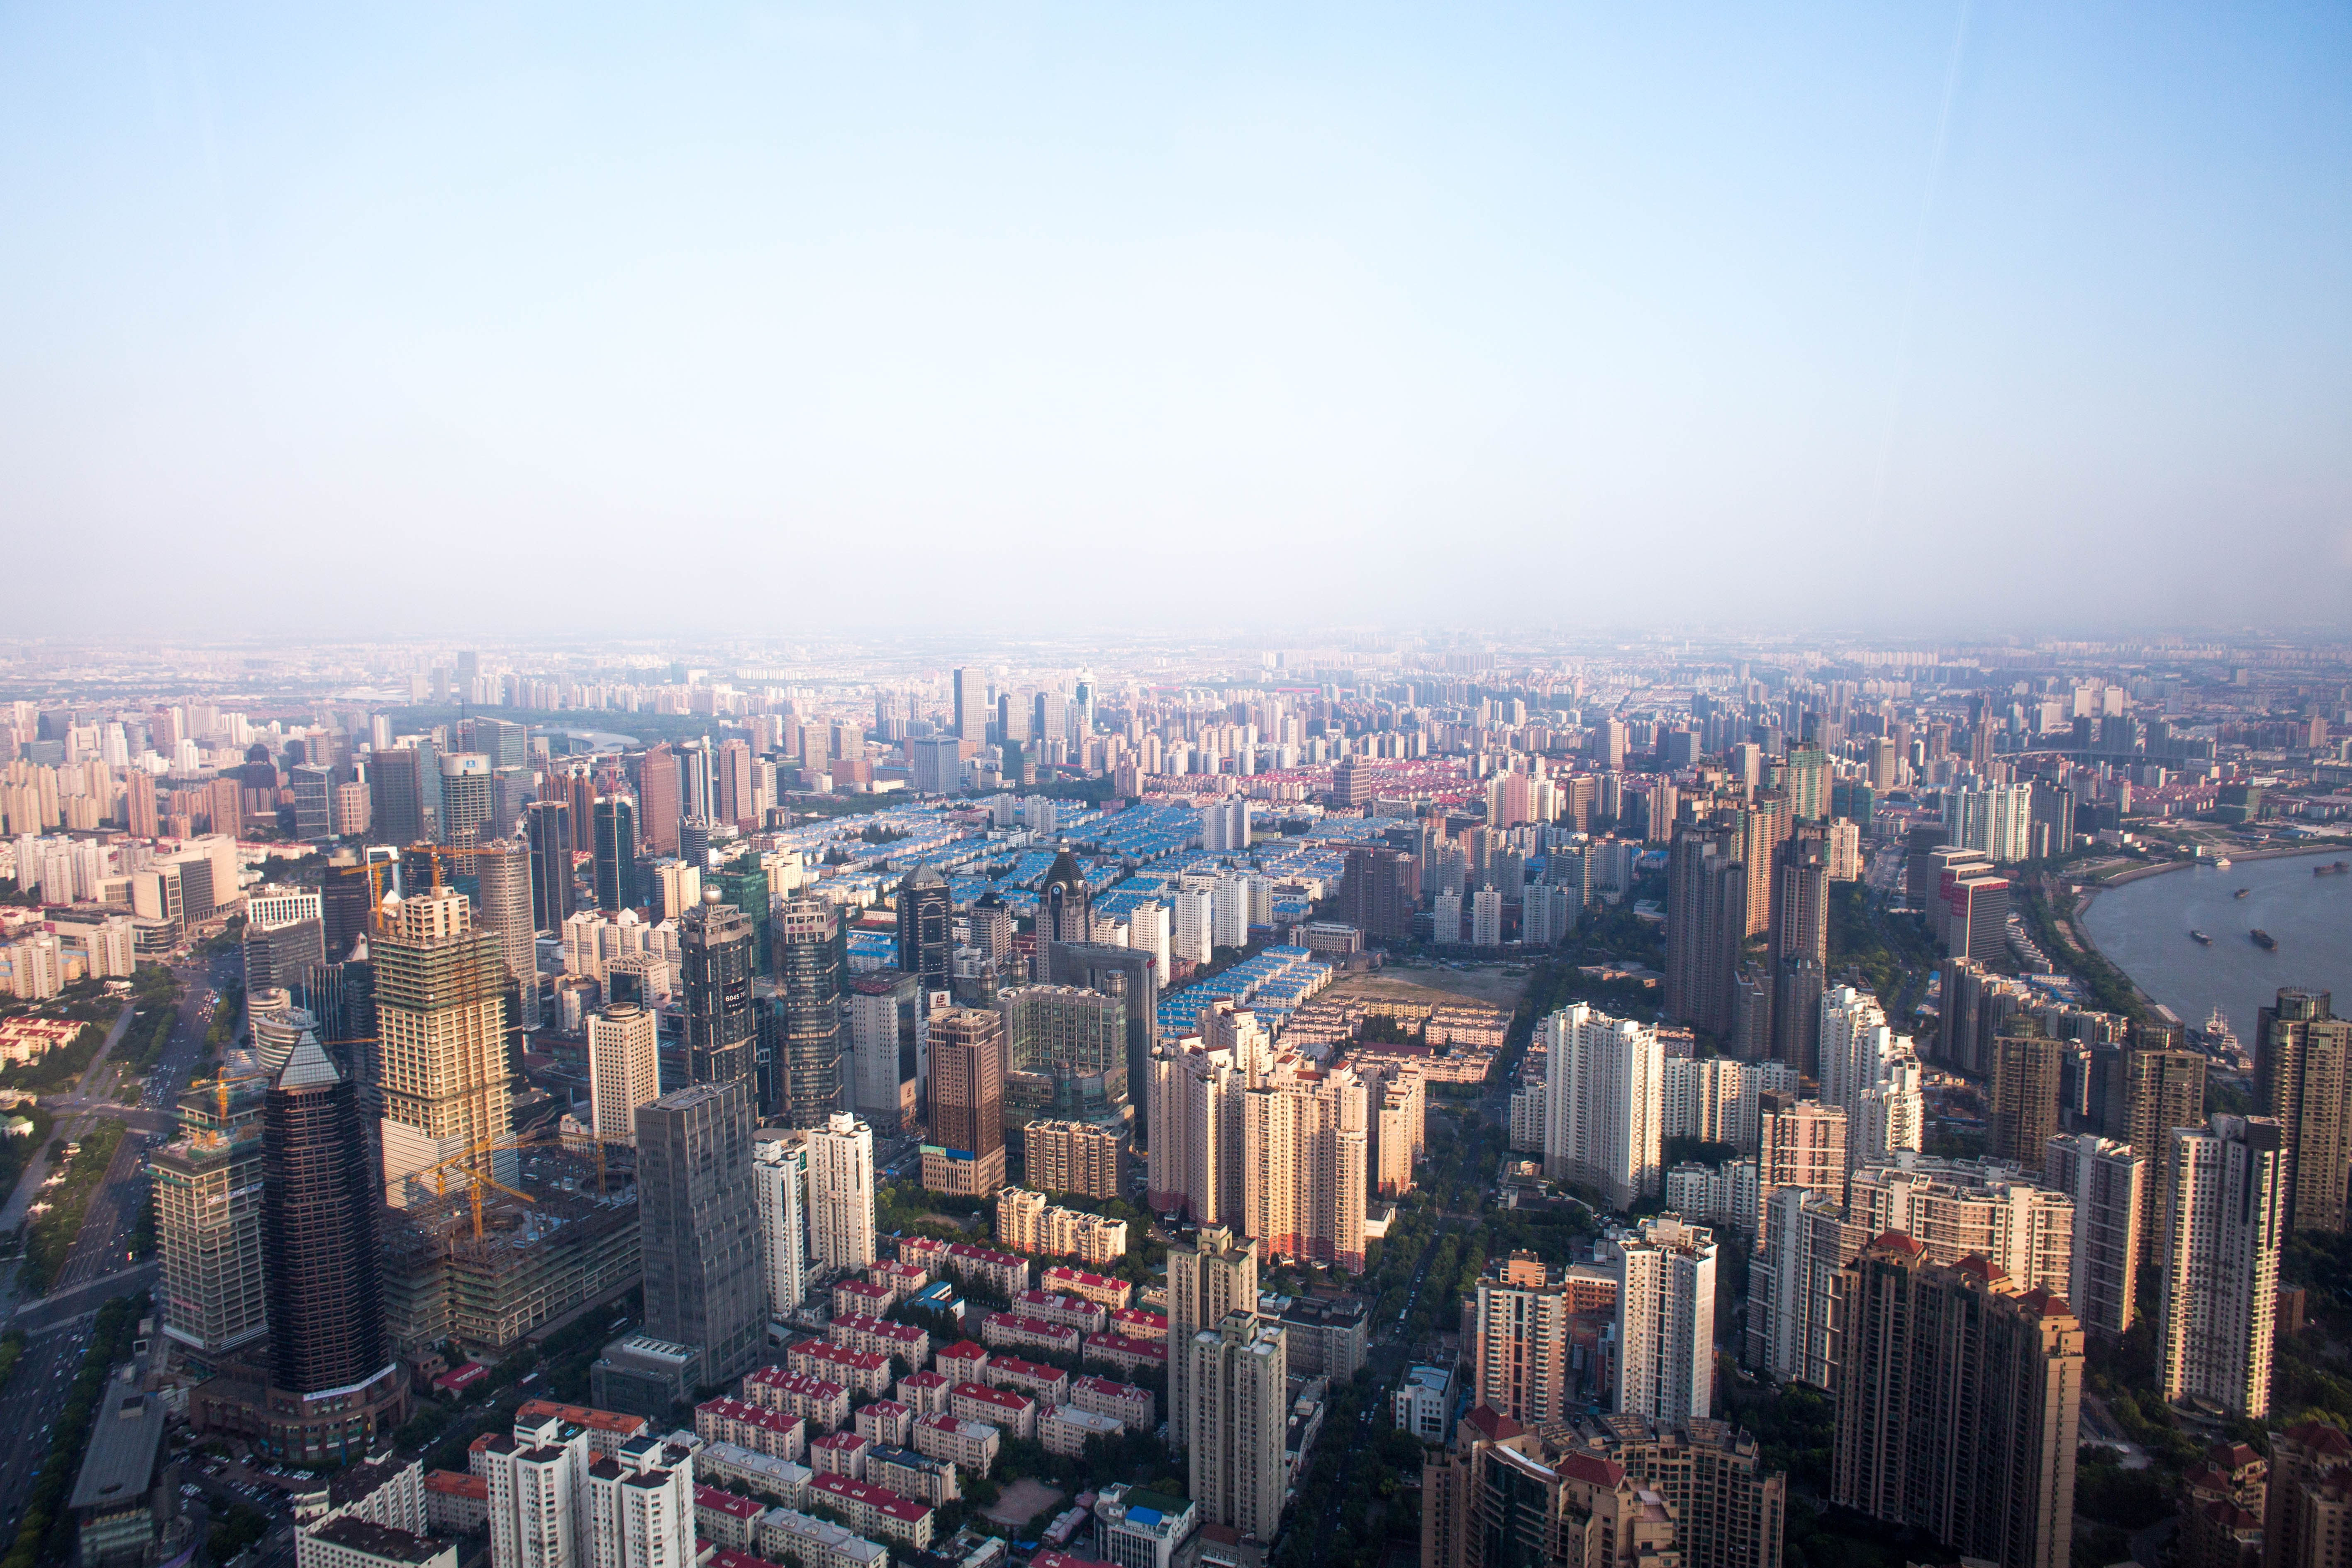 UNWTO and WTCF aim to measure city tourism